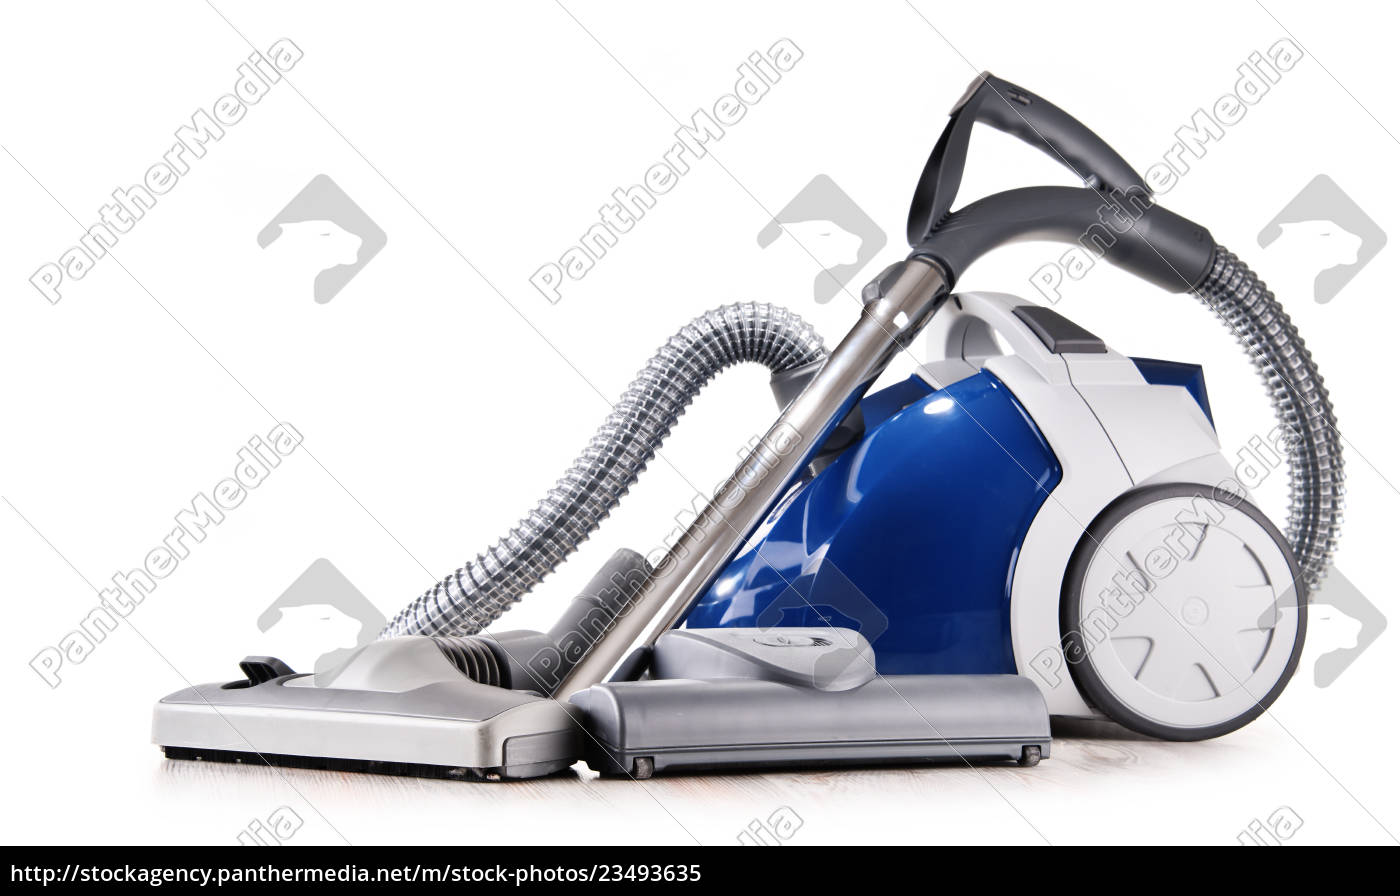 canister, vacuum, cleaner, for, home, use - 23493635